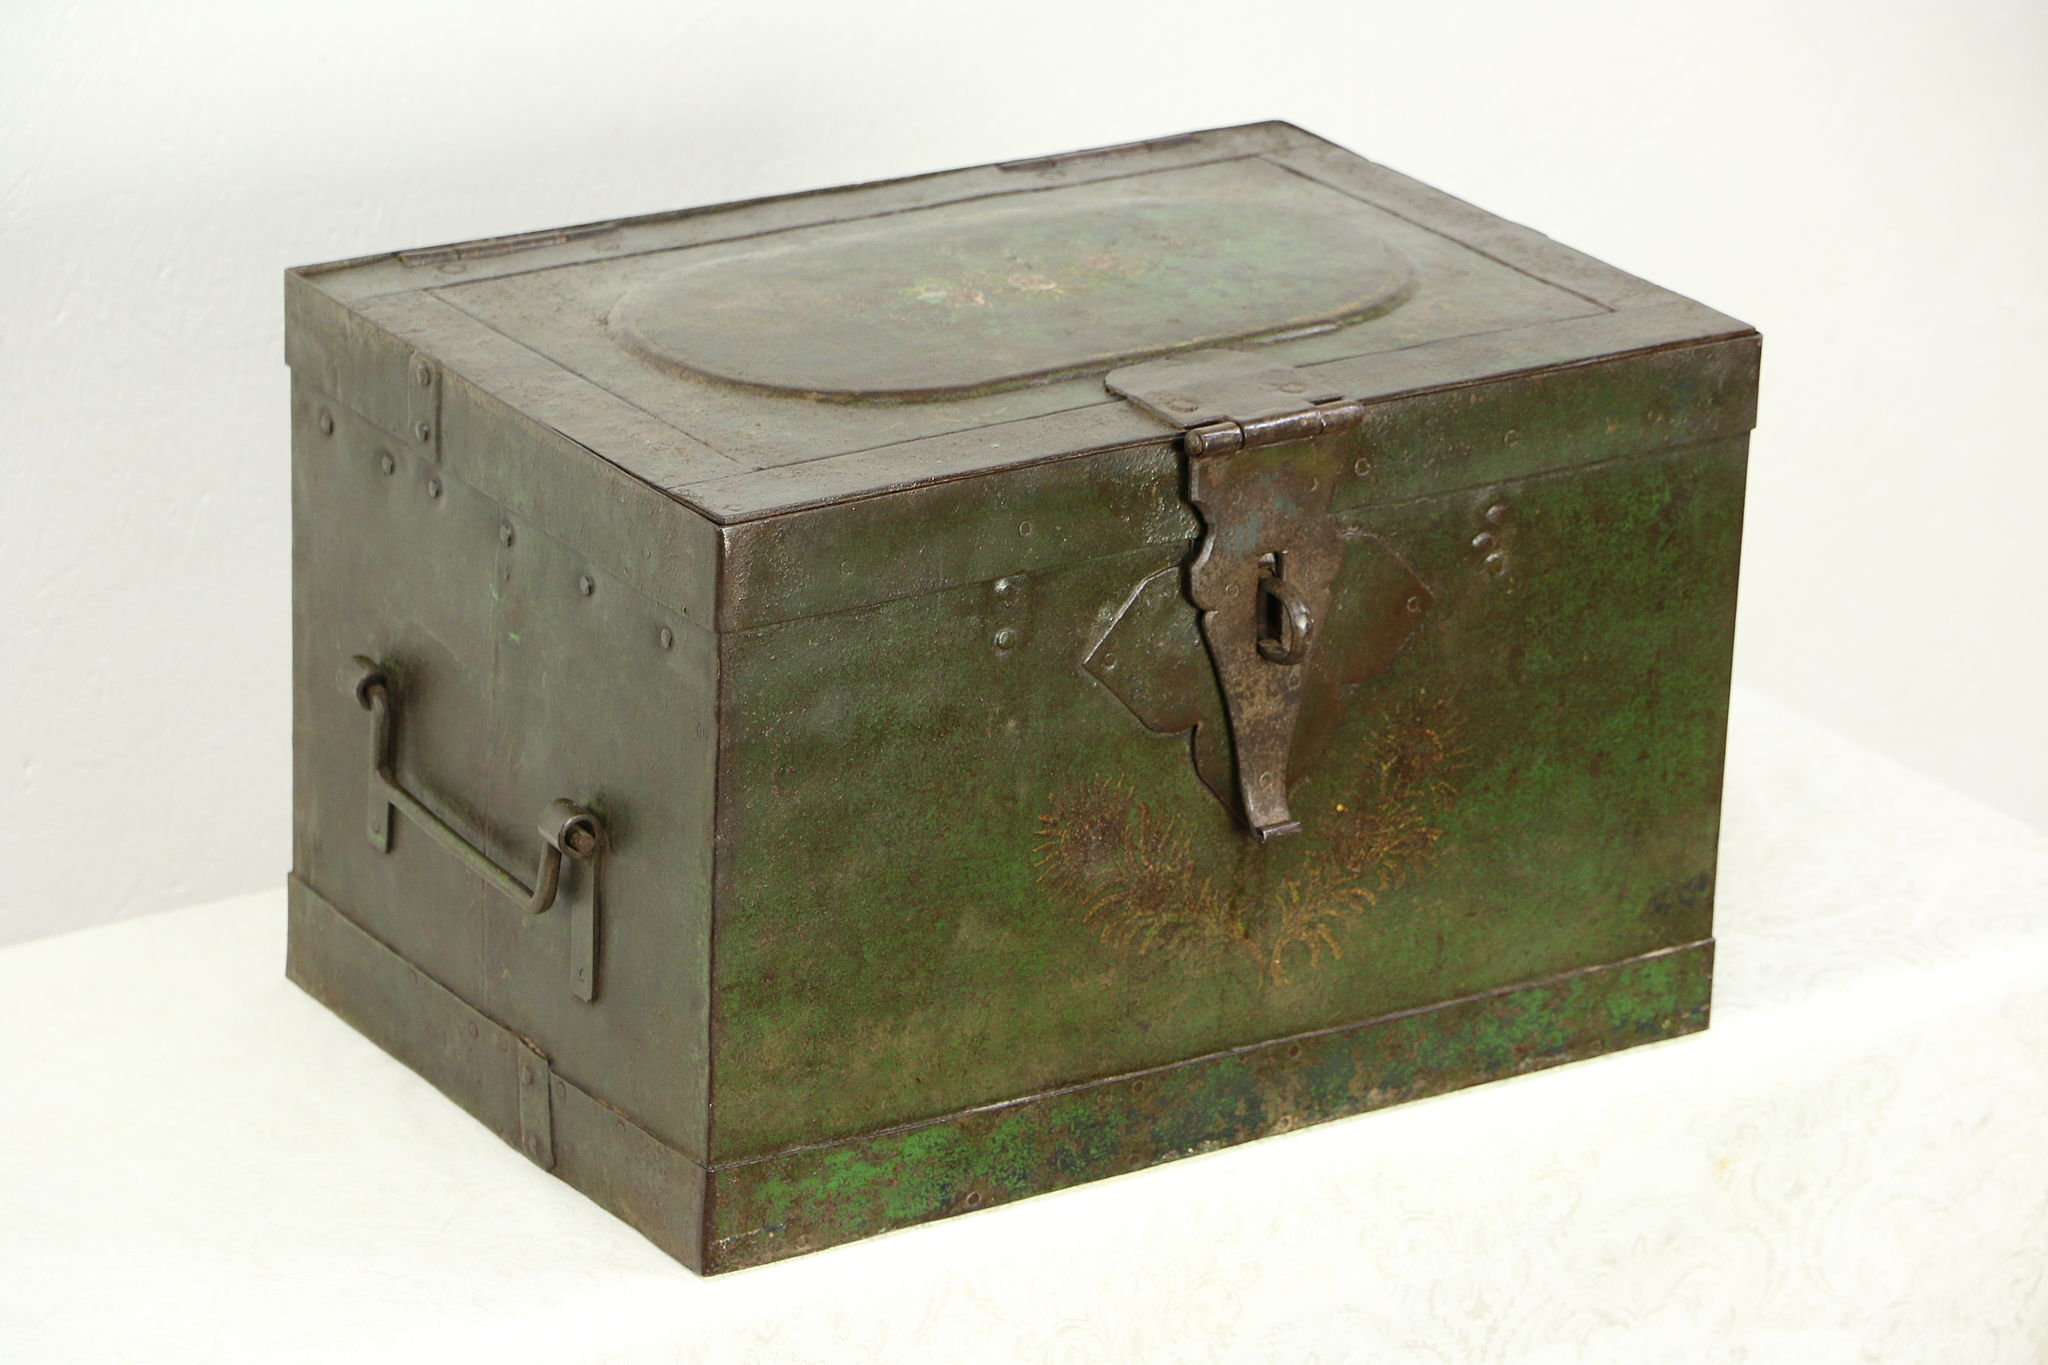 SOLD Victorian 1850s Antique Iron Railroad Strong Box